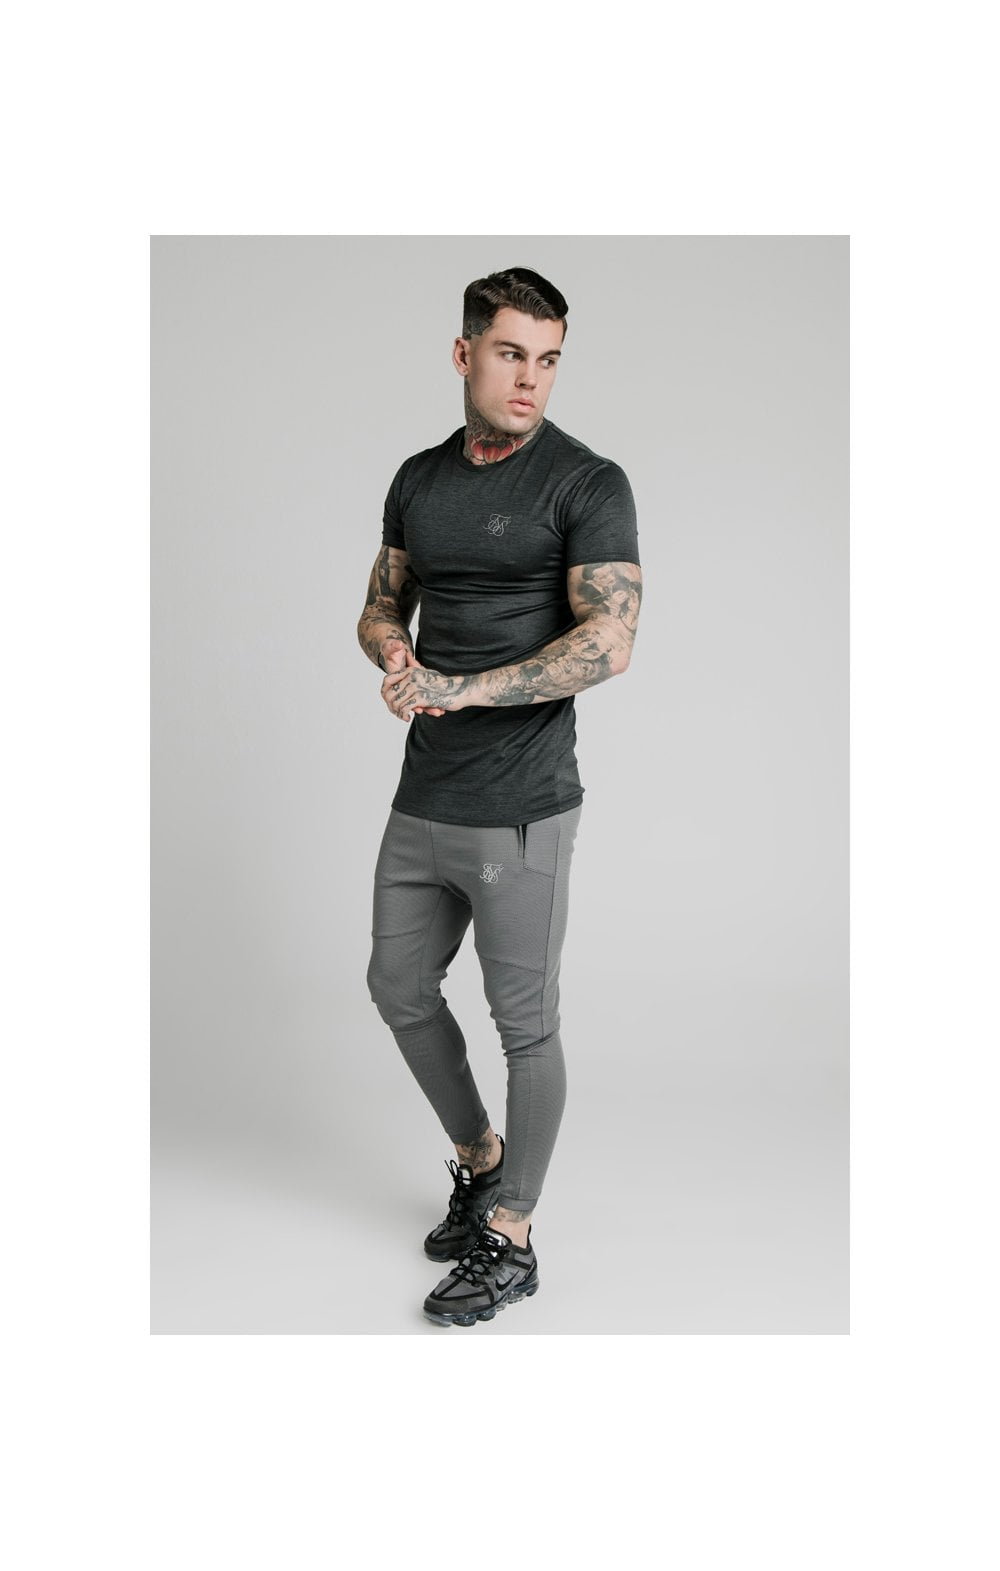 SikSilk Active Straight Hem Gym Tee - Charcoal Marl (3)